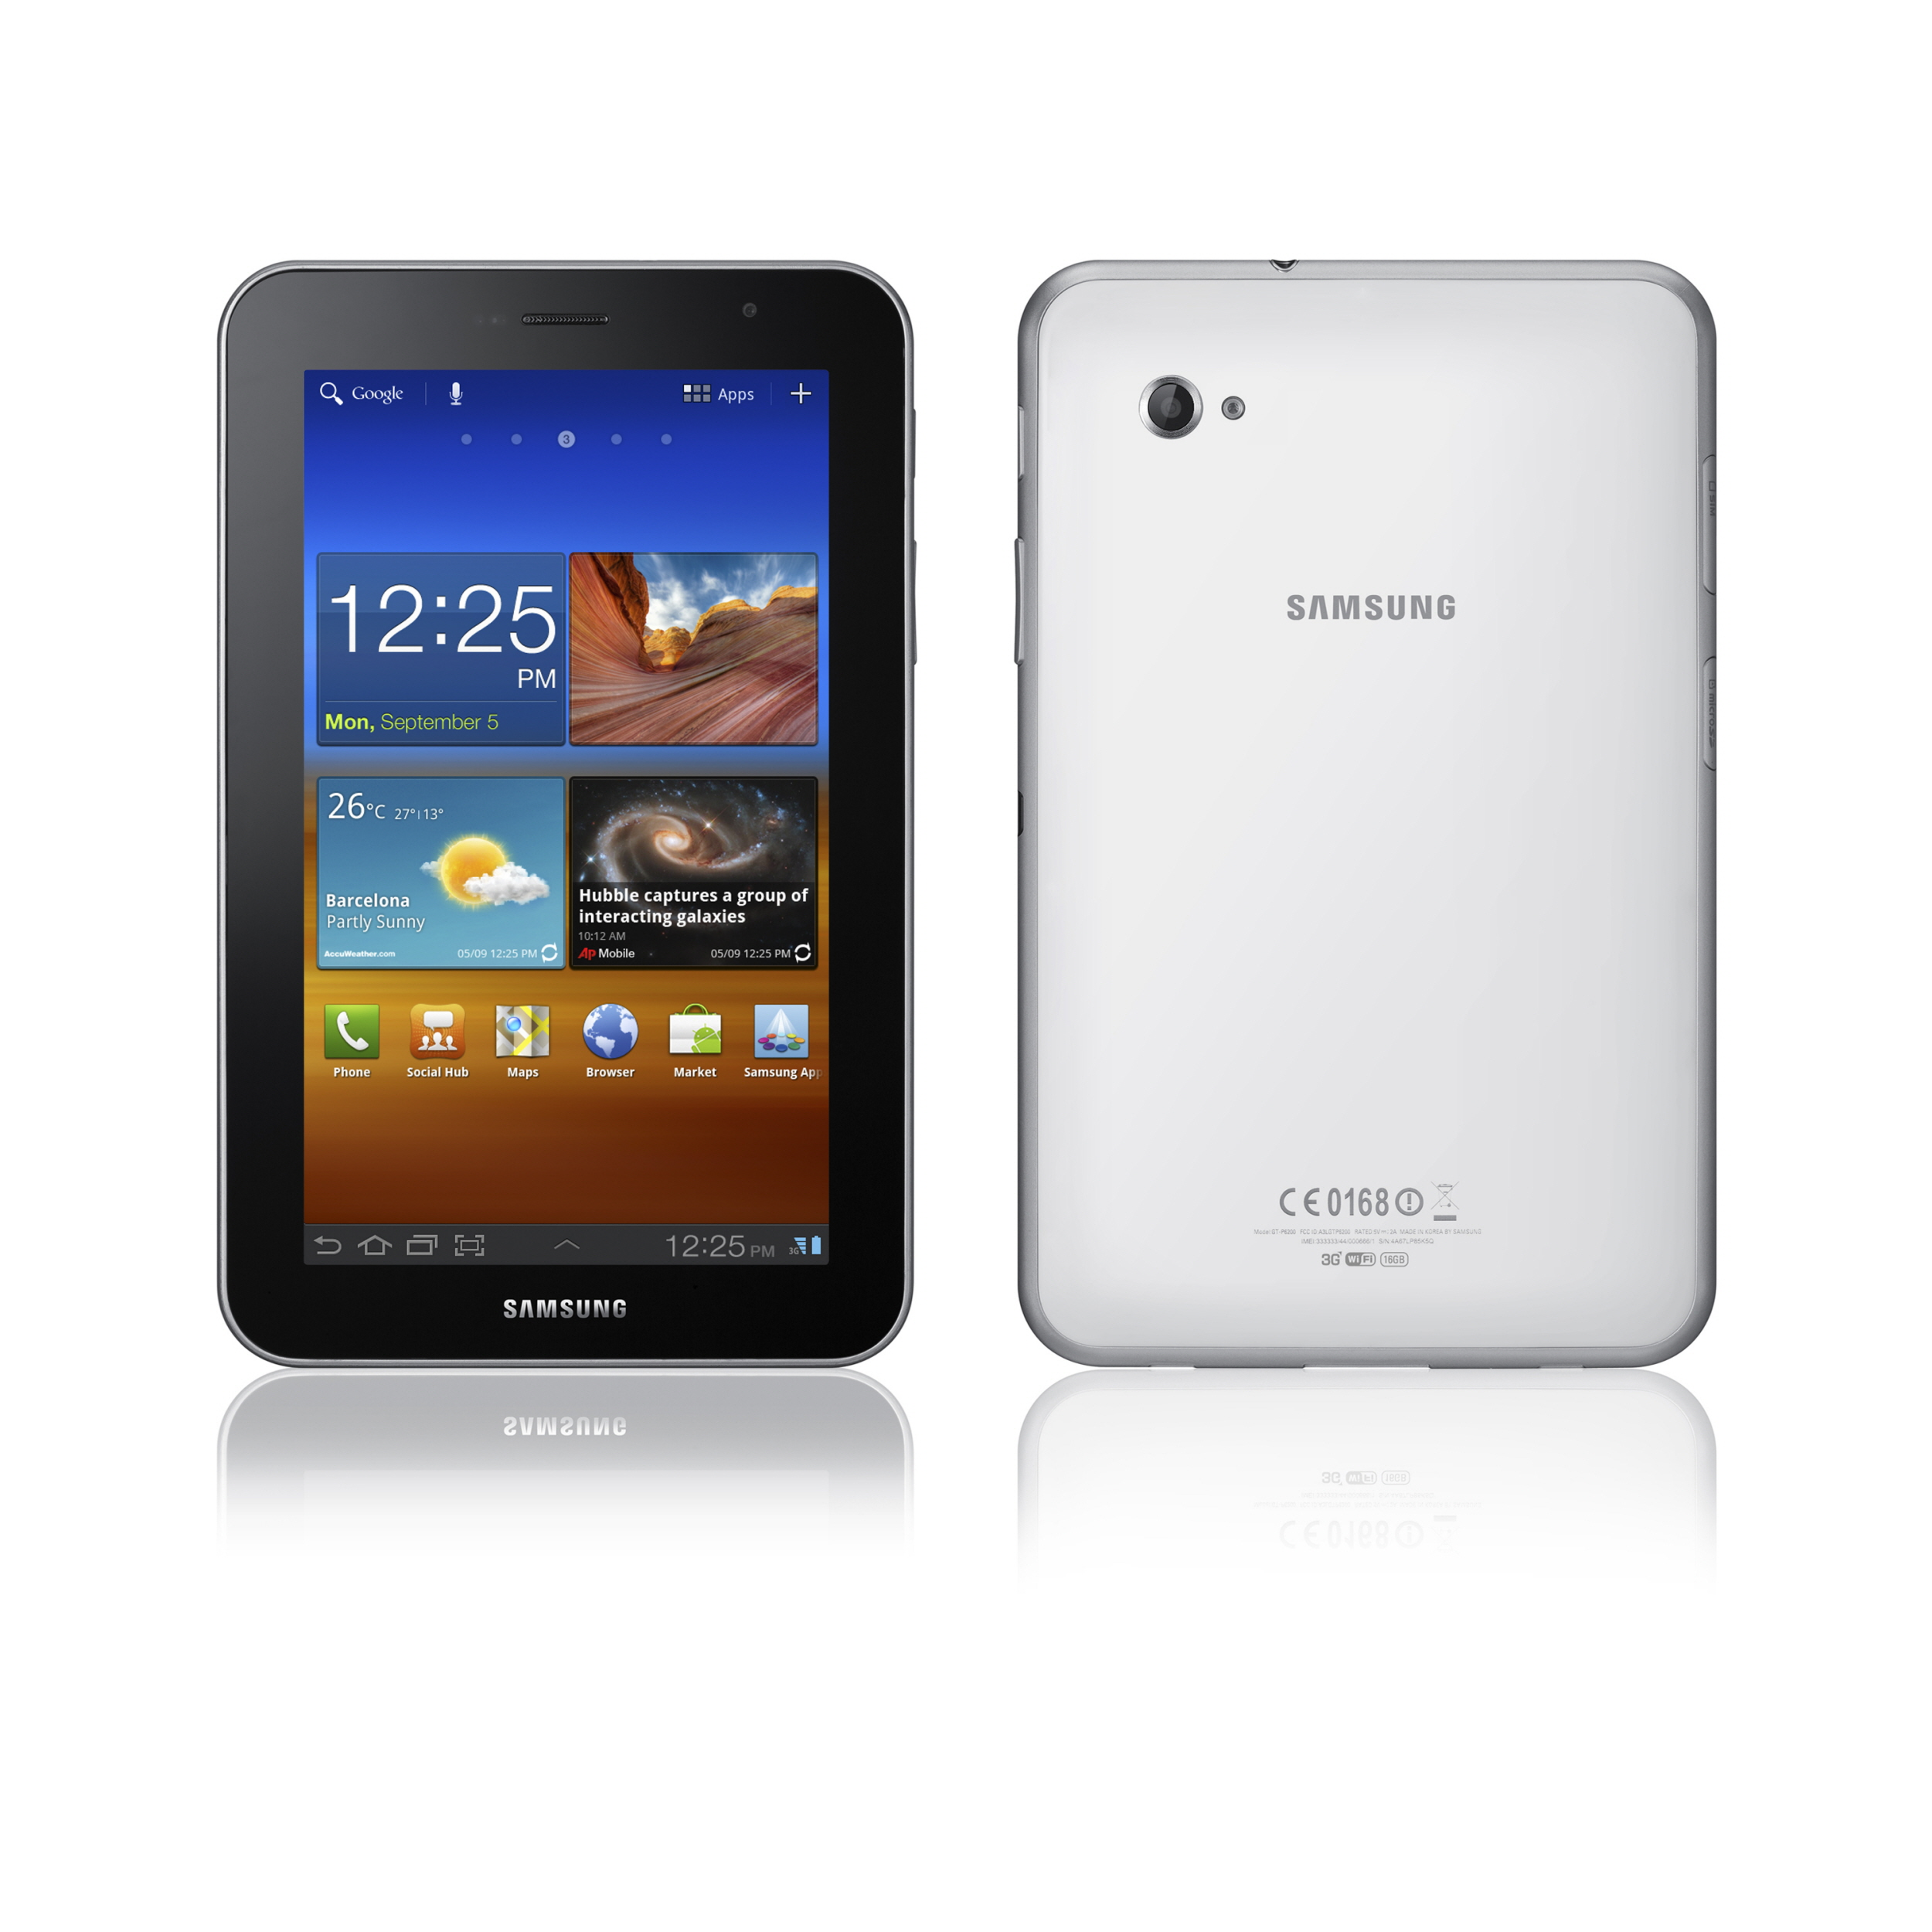 GALAXY Tab 7.0 Plus Product Image (1)